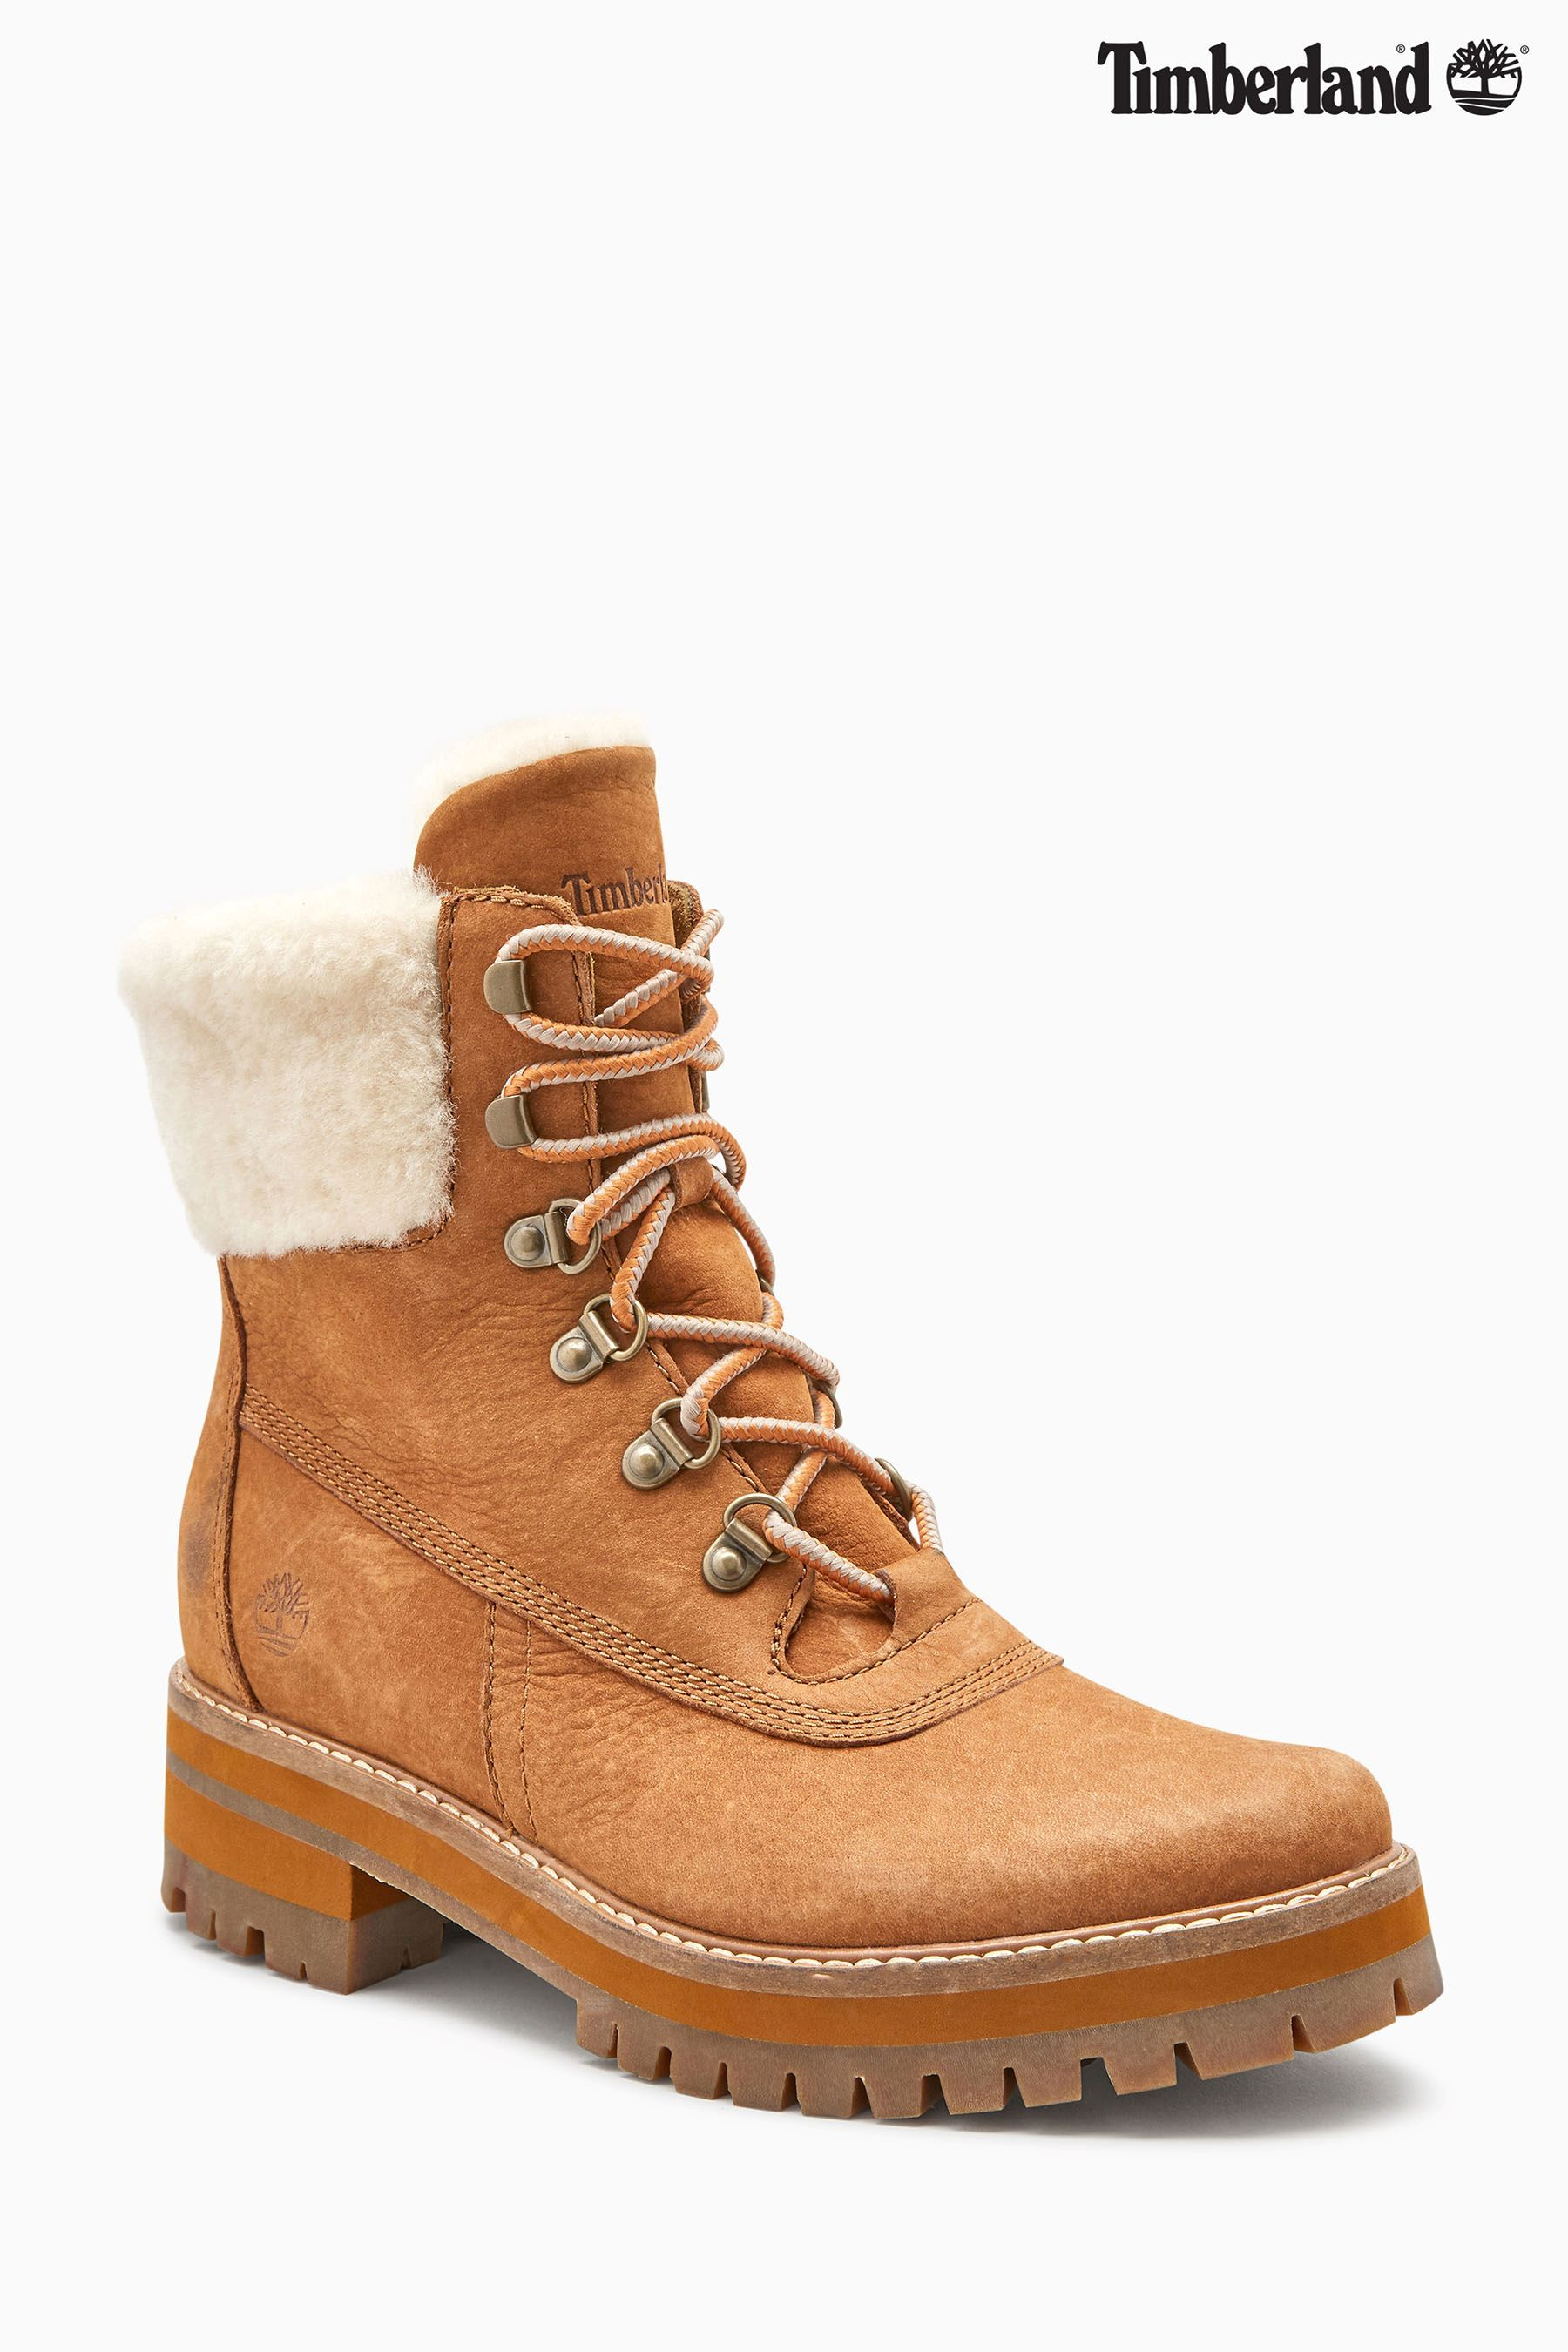 8dd9b40314036 Womens Timberland Courmayeur Valley Shearling Boot - Brown ...